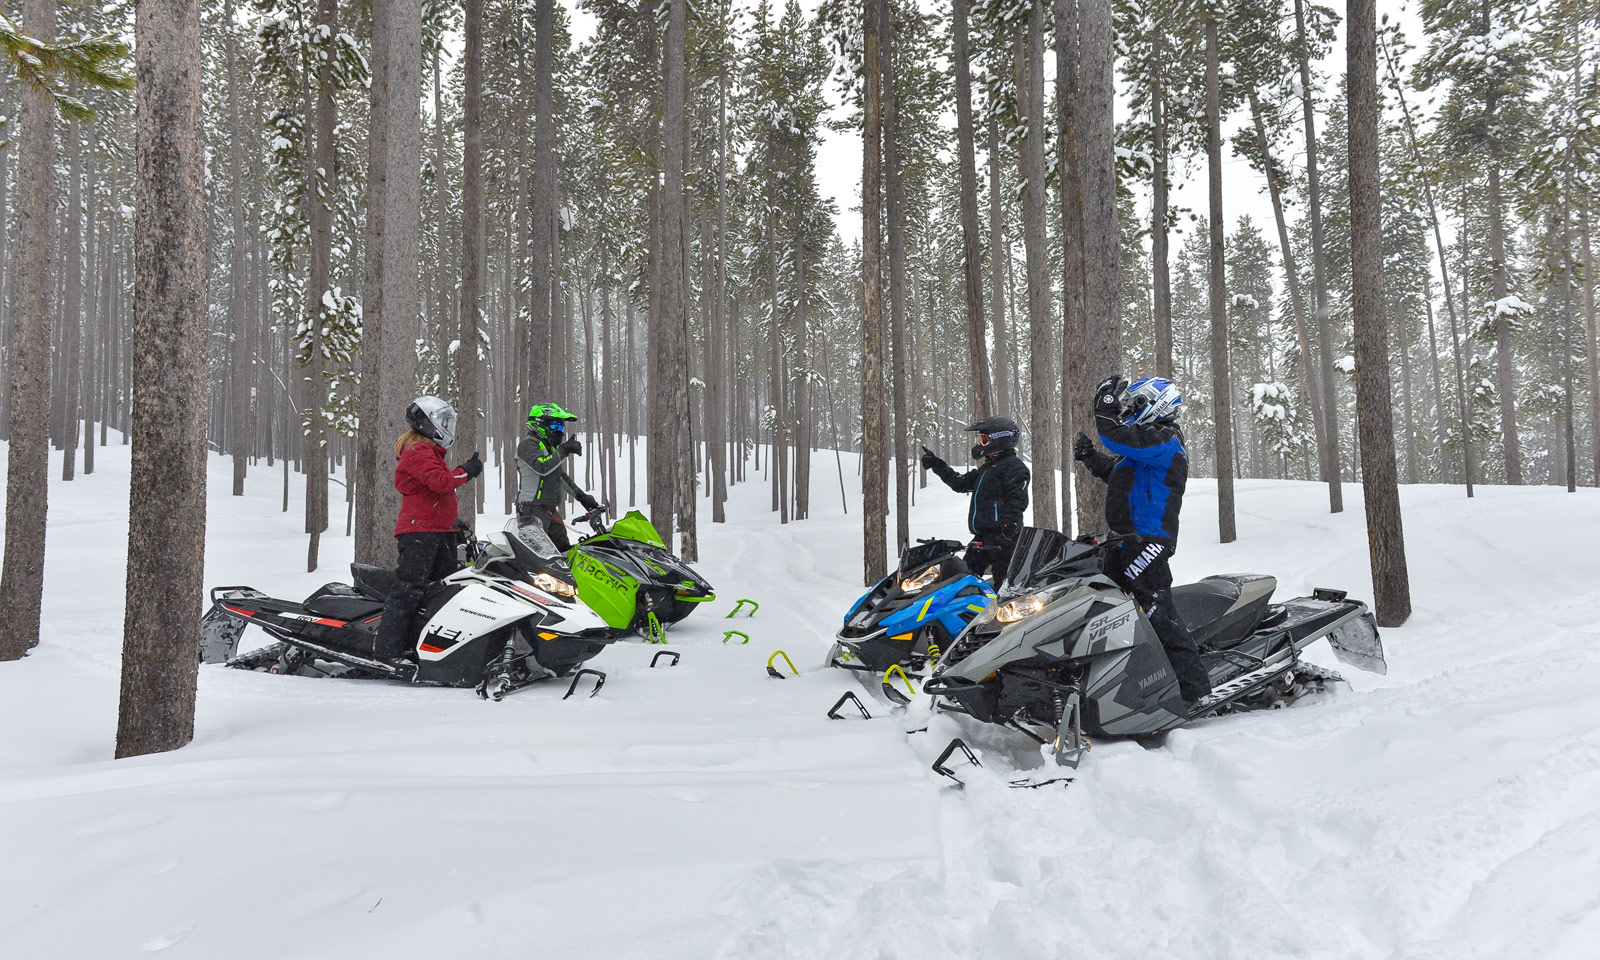 Snowmobilers gathered together as group